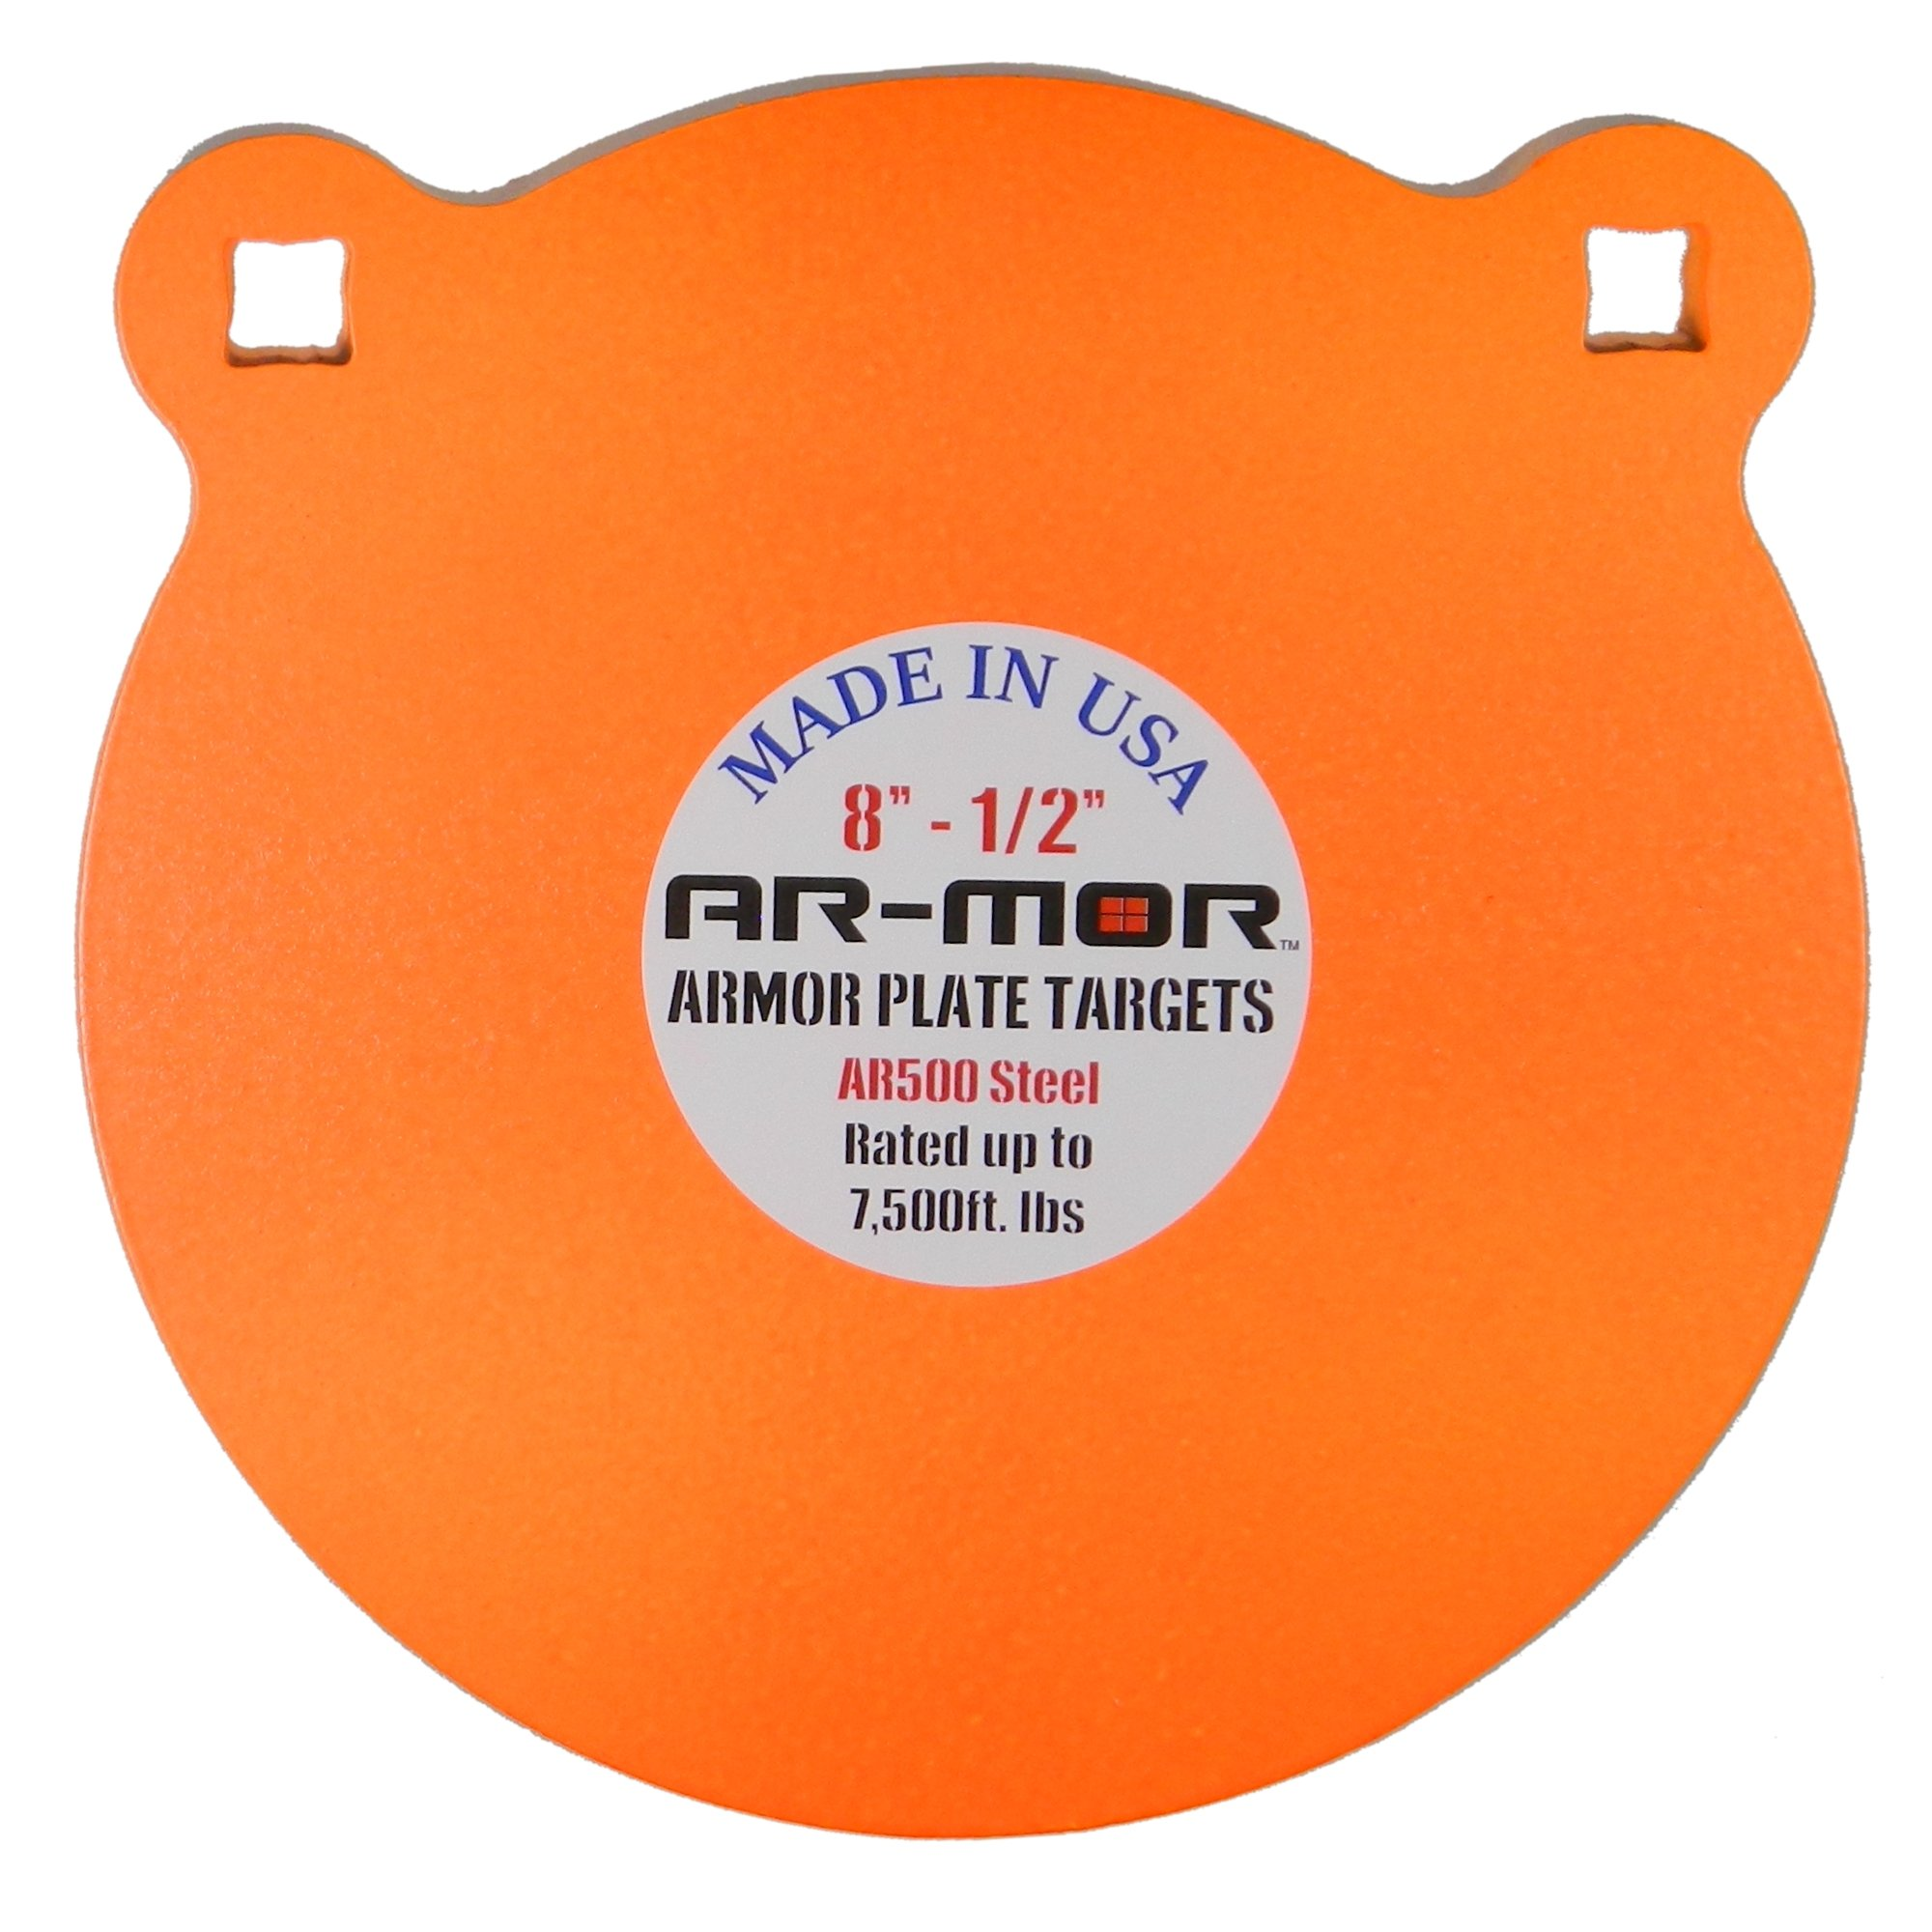 AR-MOR Targets 8'' x 1/2'' Round AR-500 Gong, Orange, One Size